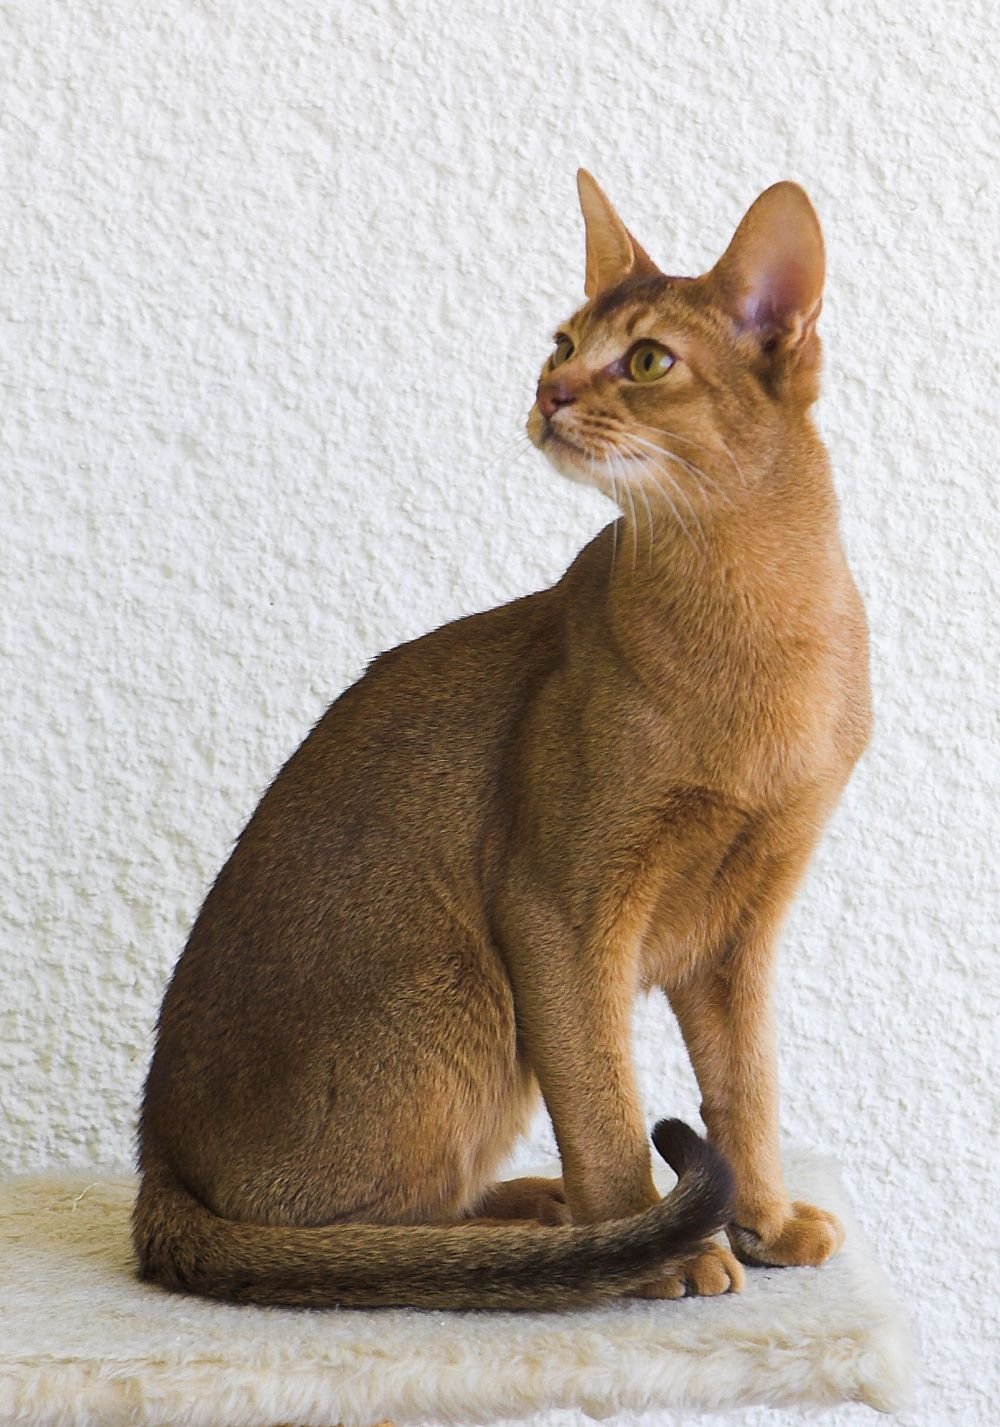 Abyssinian Kittens for Sale & Cats for Adoption | Abyssinian, Cat ...